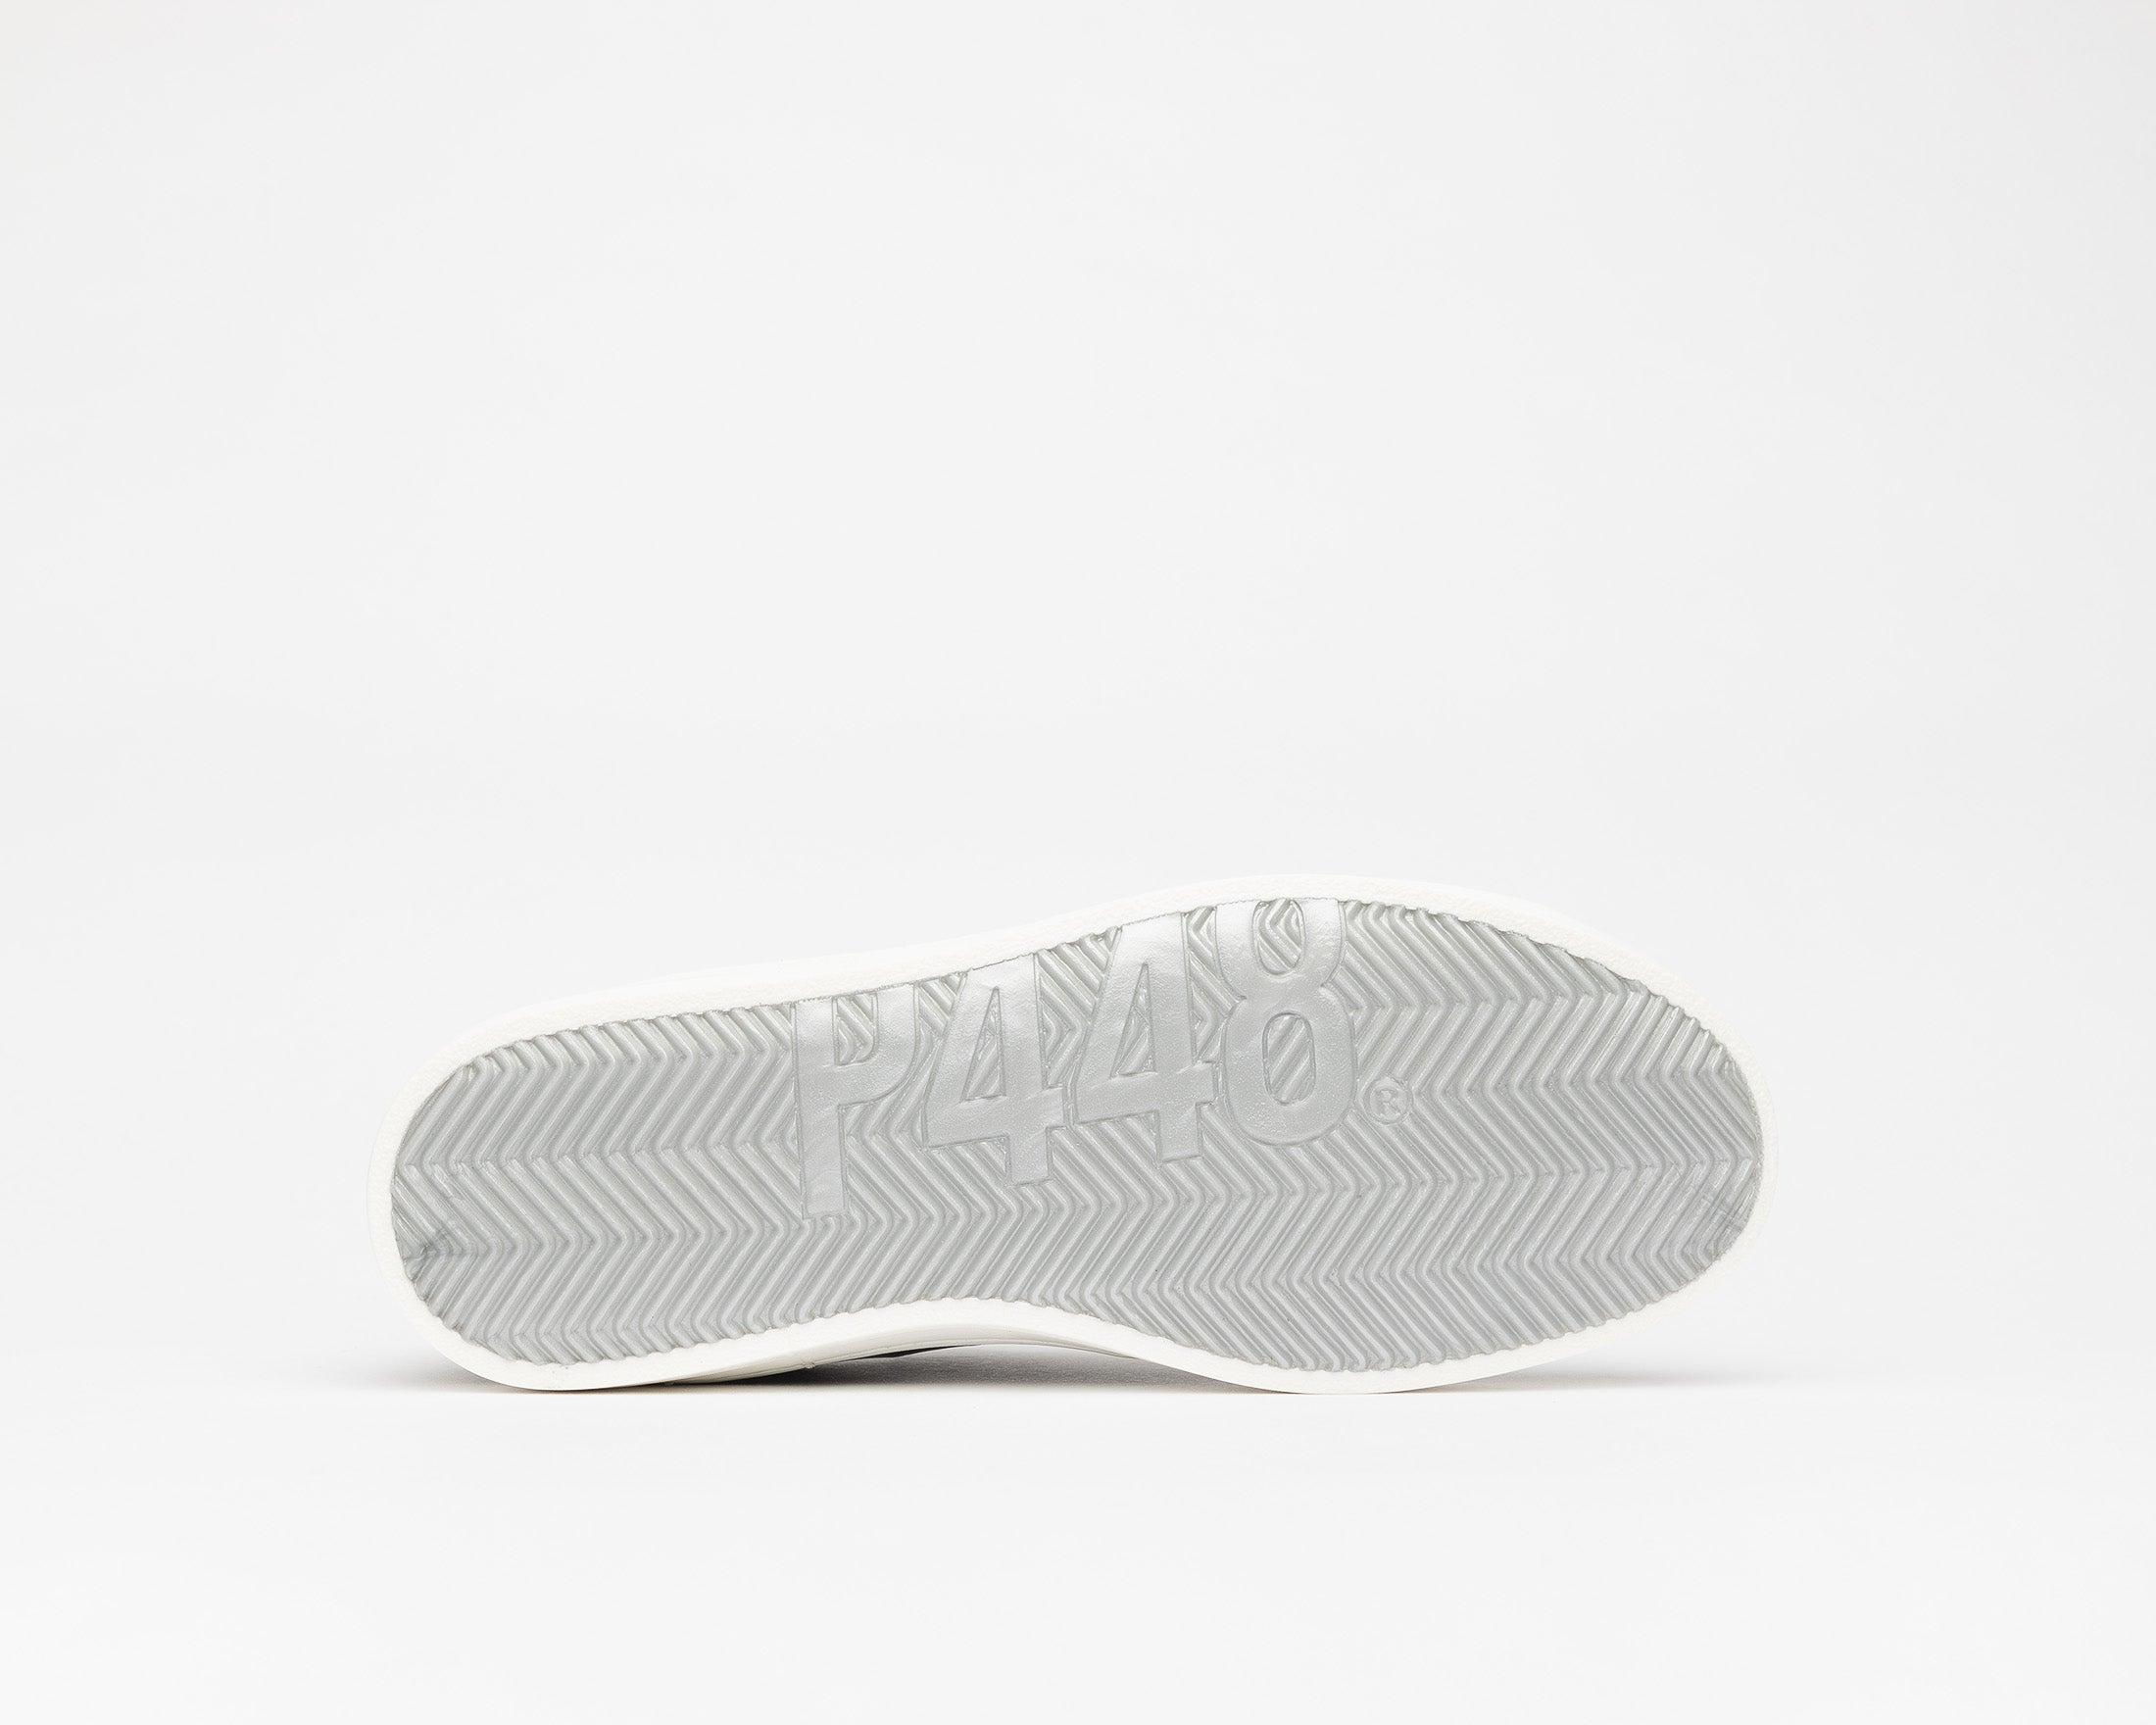 John Low-Top Sneaker in White Zebra/Beige - Bottomm